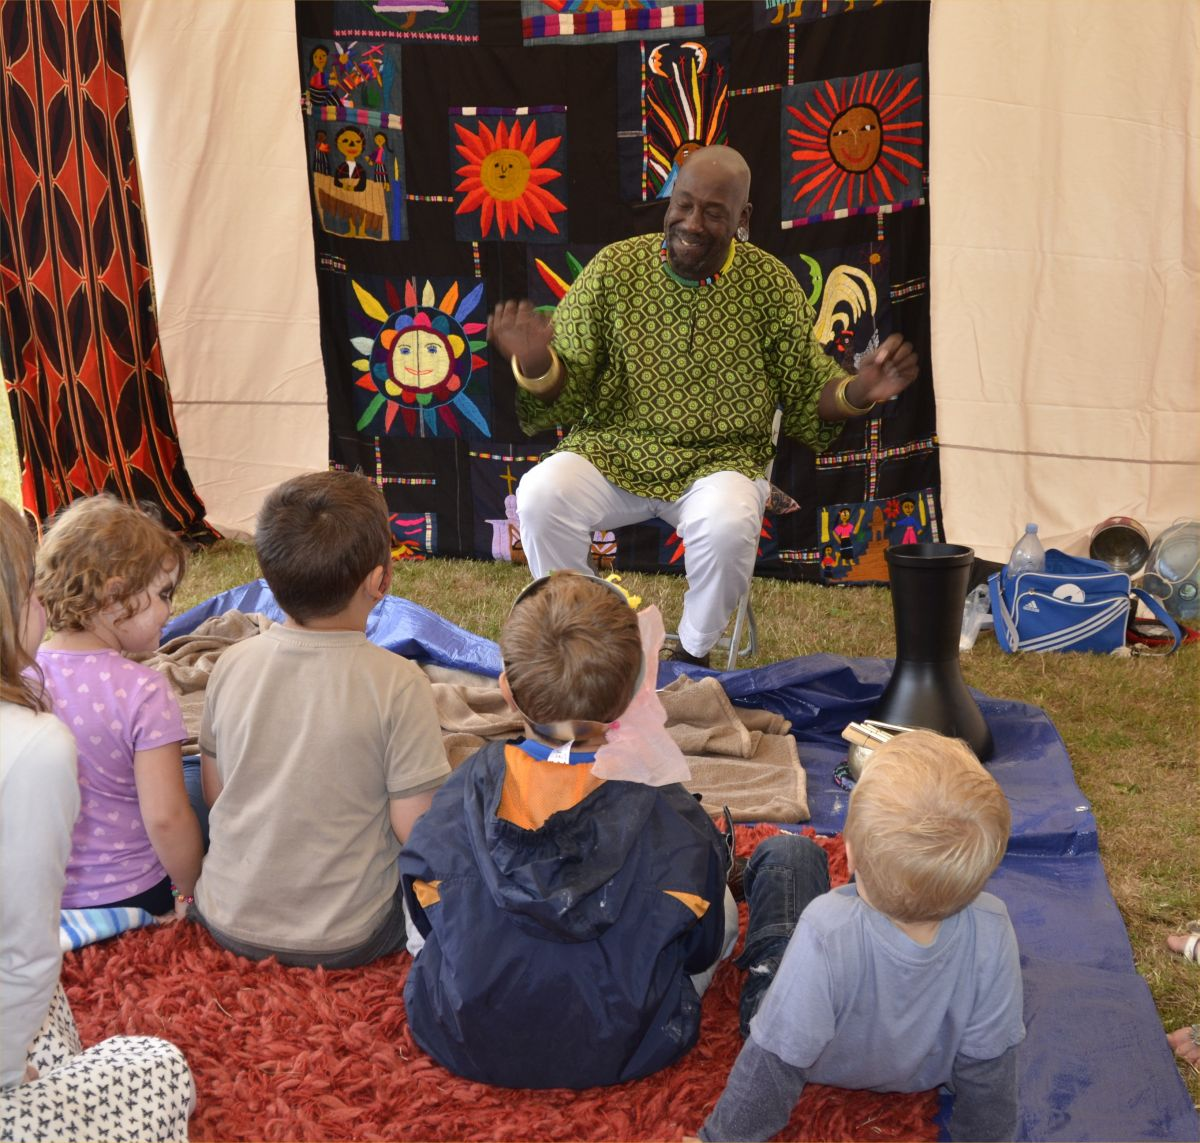 TUUP the storyteller weaving his magic over a spellbound audience at the Watchet